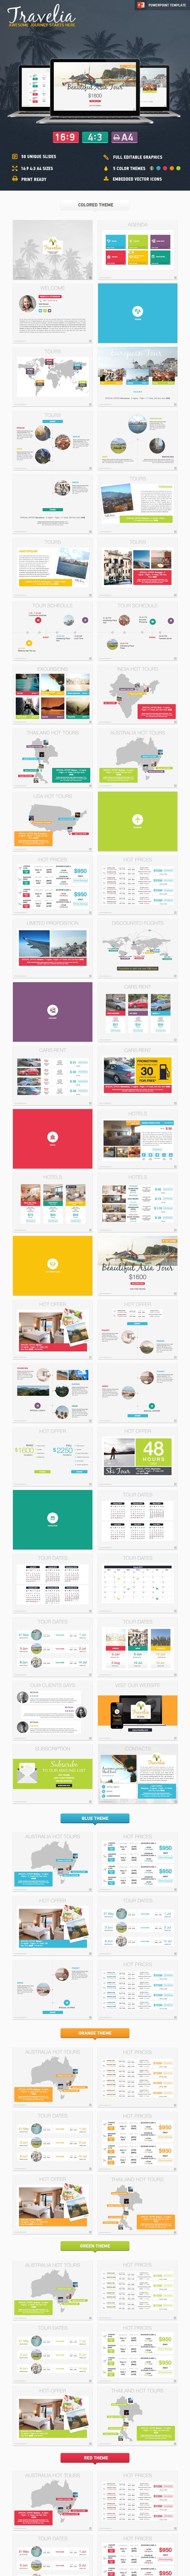 Travelia PowerPoint Presentation Template  - PowerPoint Templates Presentation Templates